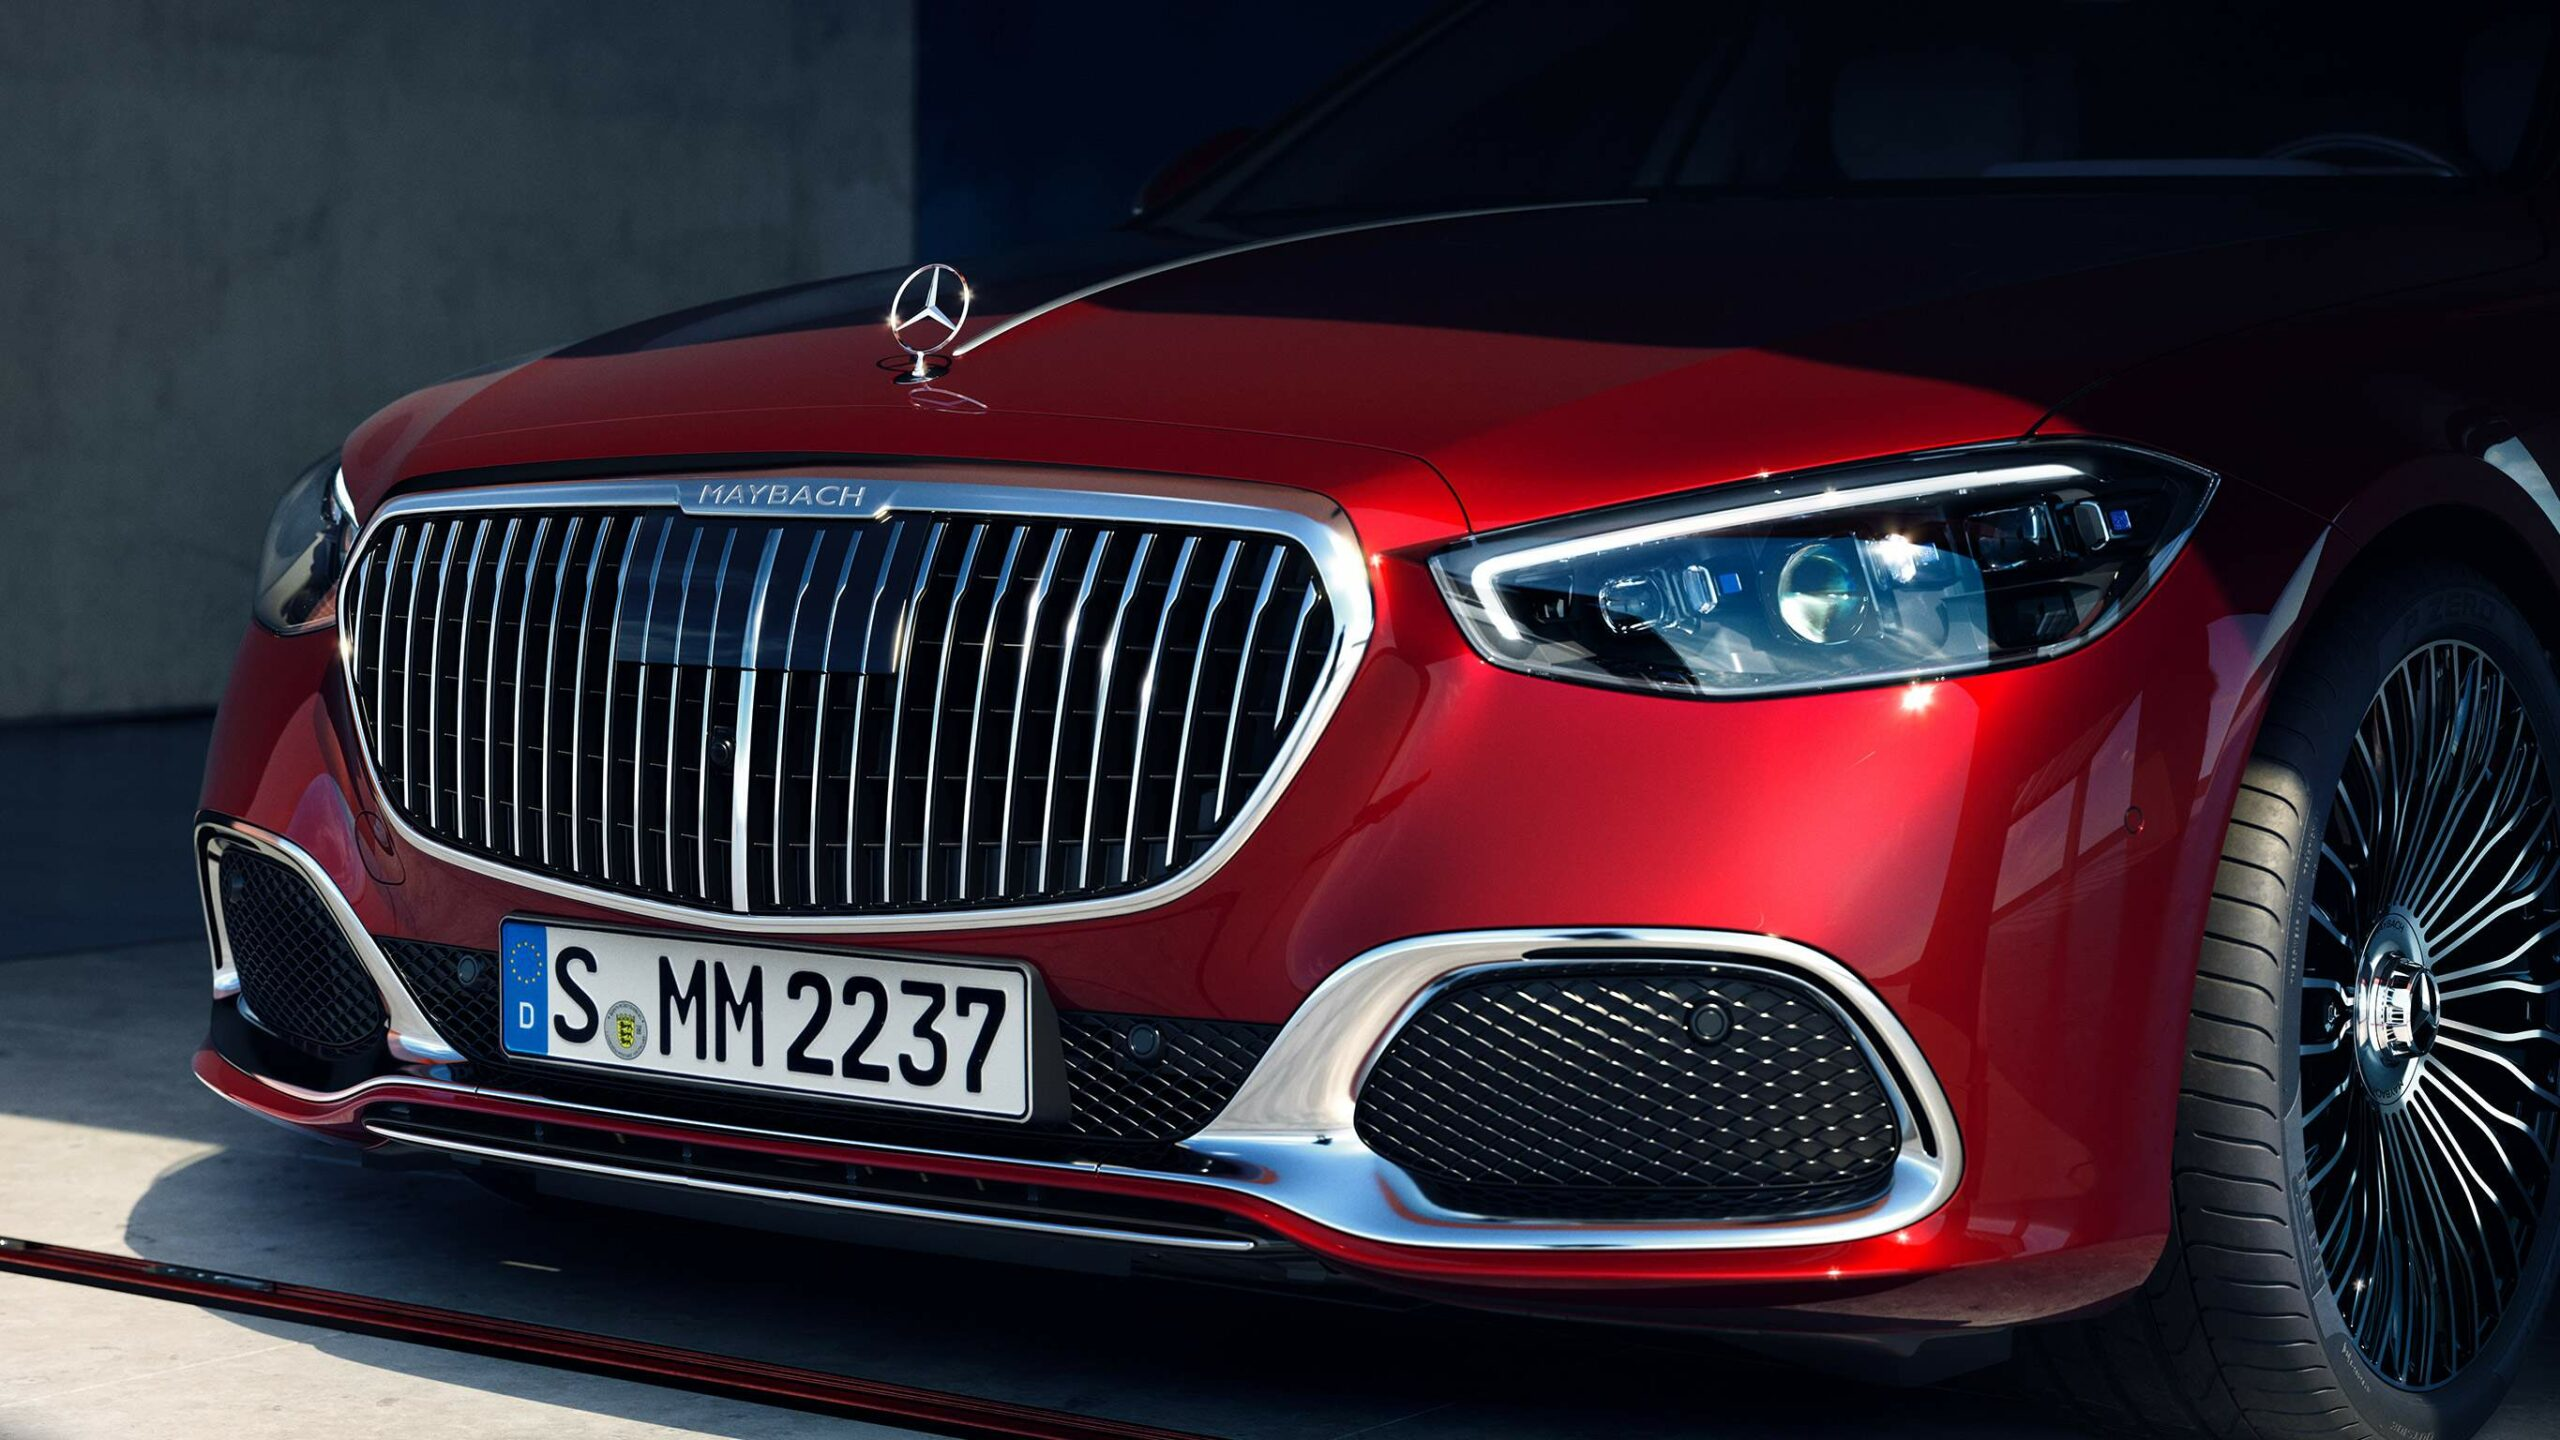 Mercedes-Classe-S-Maybach-01